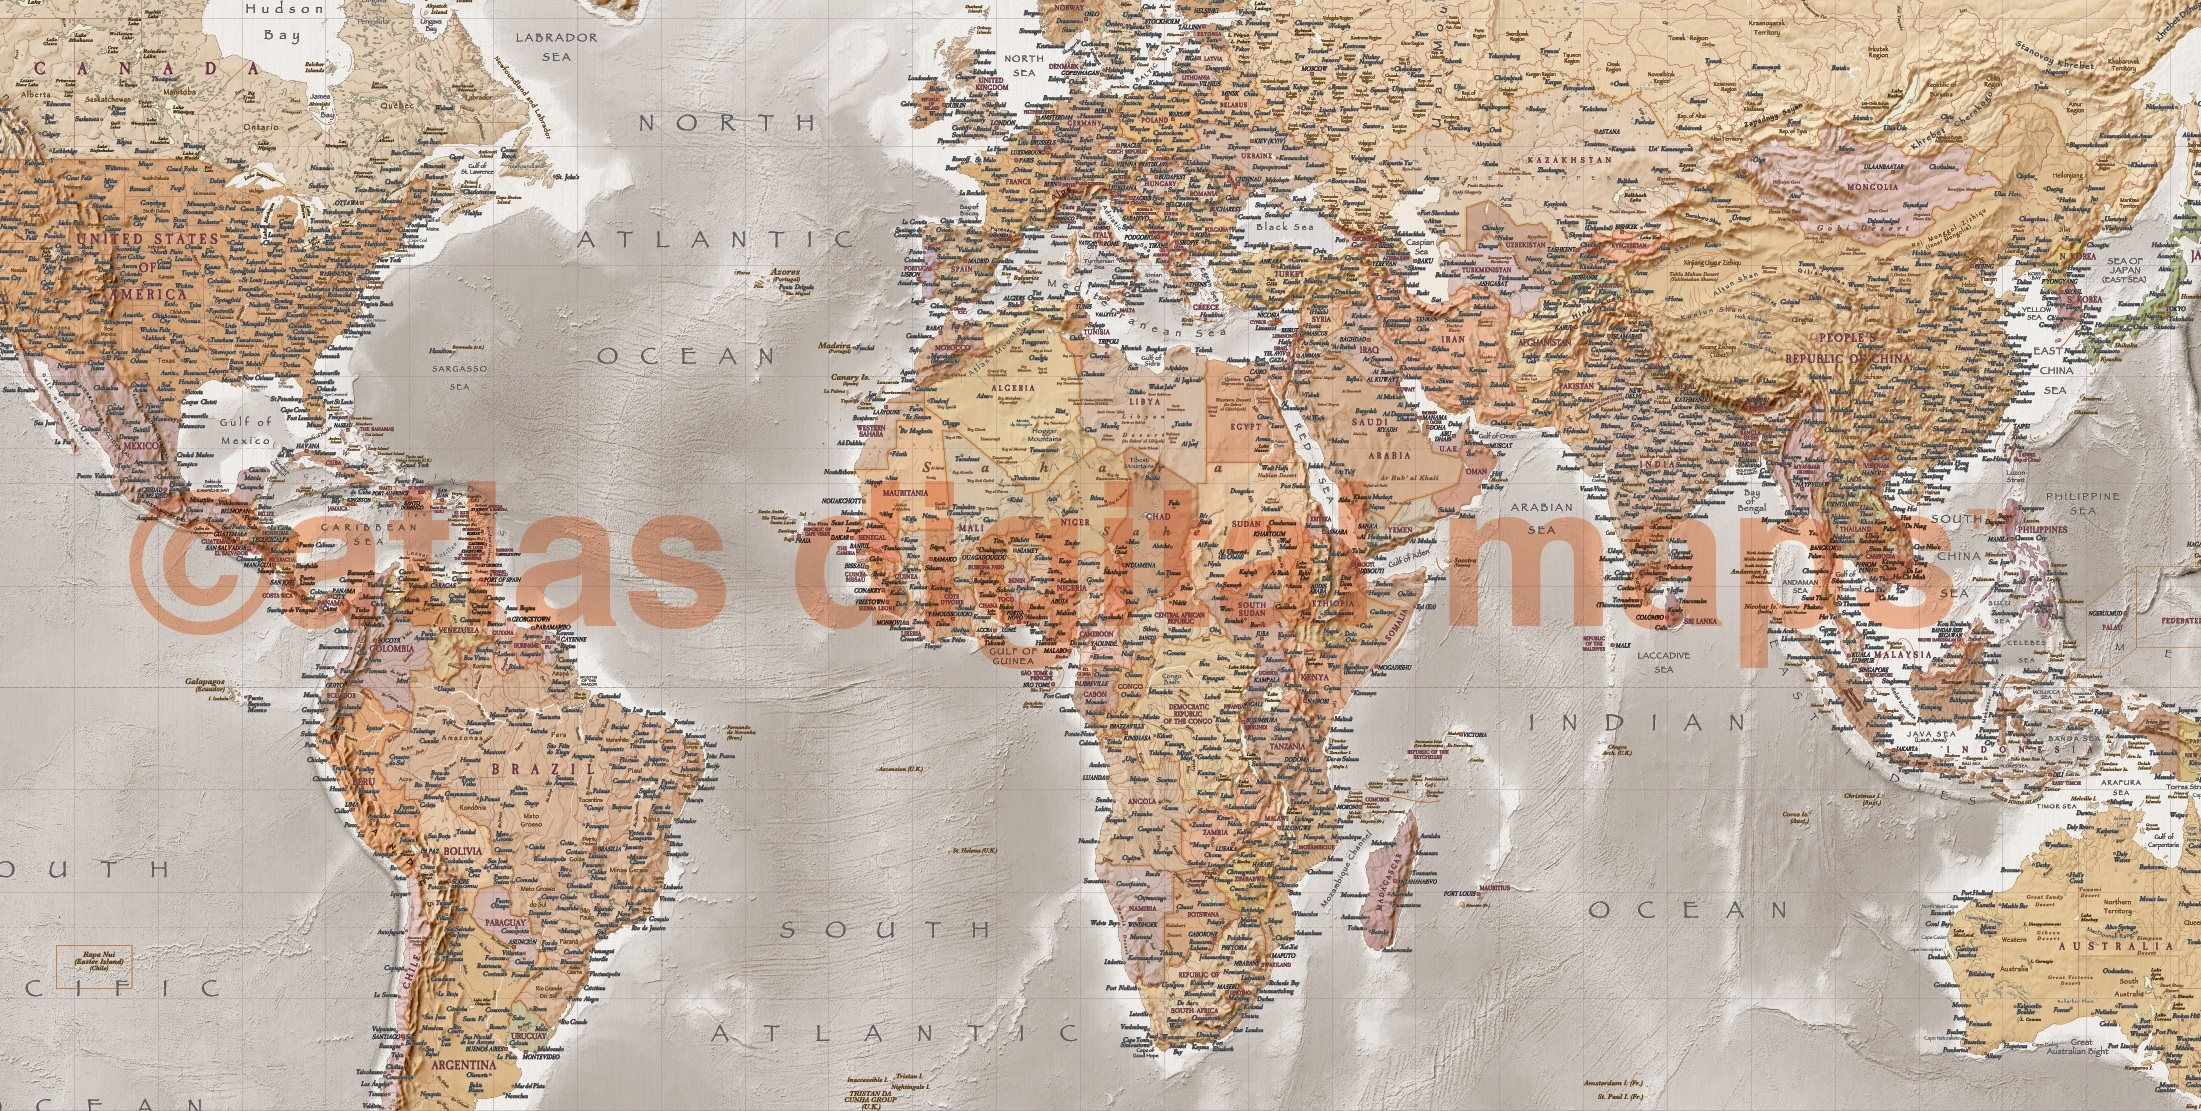 World map canvas antique style physical political large map of the sale world map canvas antique style physical political large map of the world stone stretchedlarge gumiabroncs Gallery